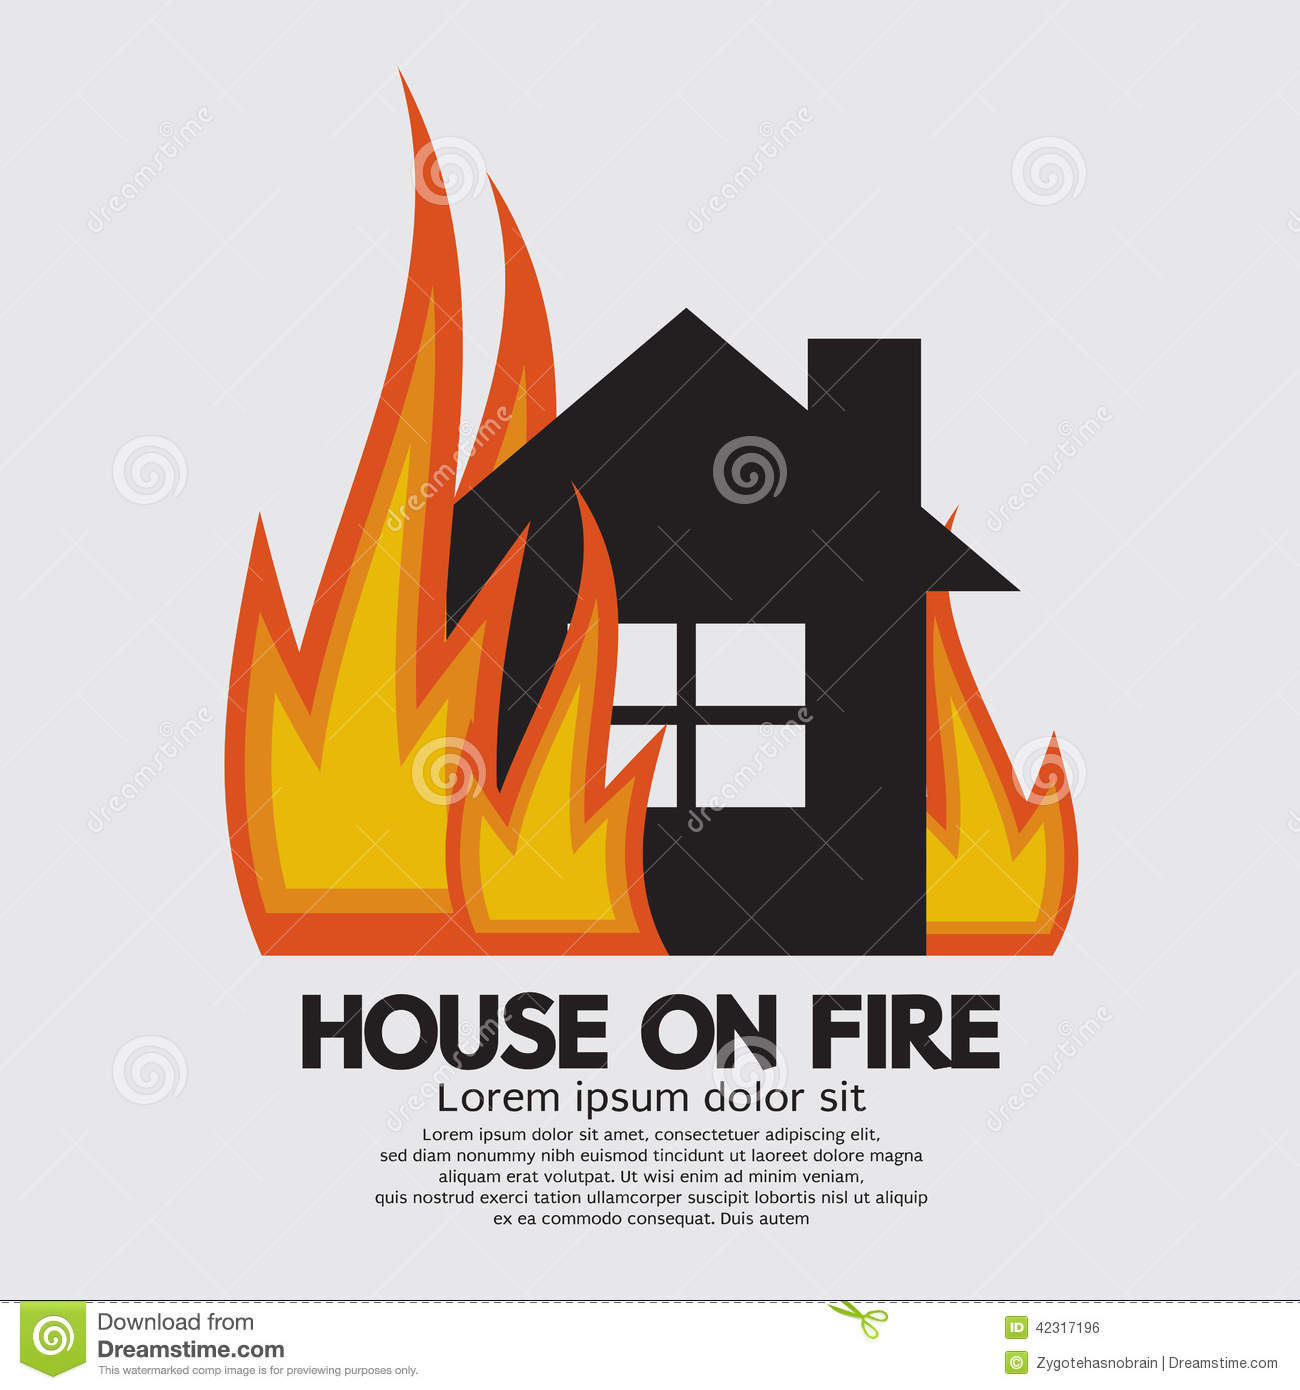 House fire clipart.